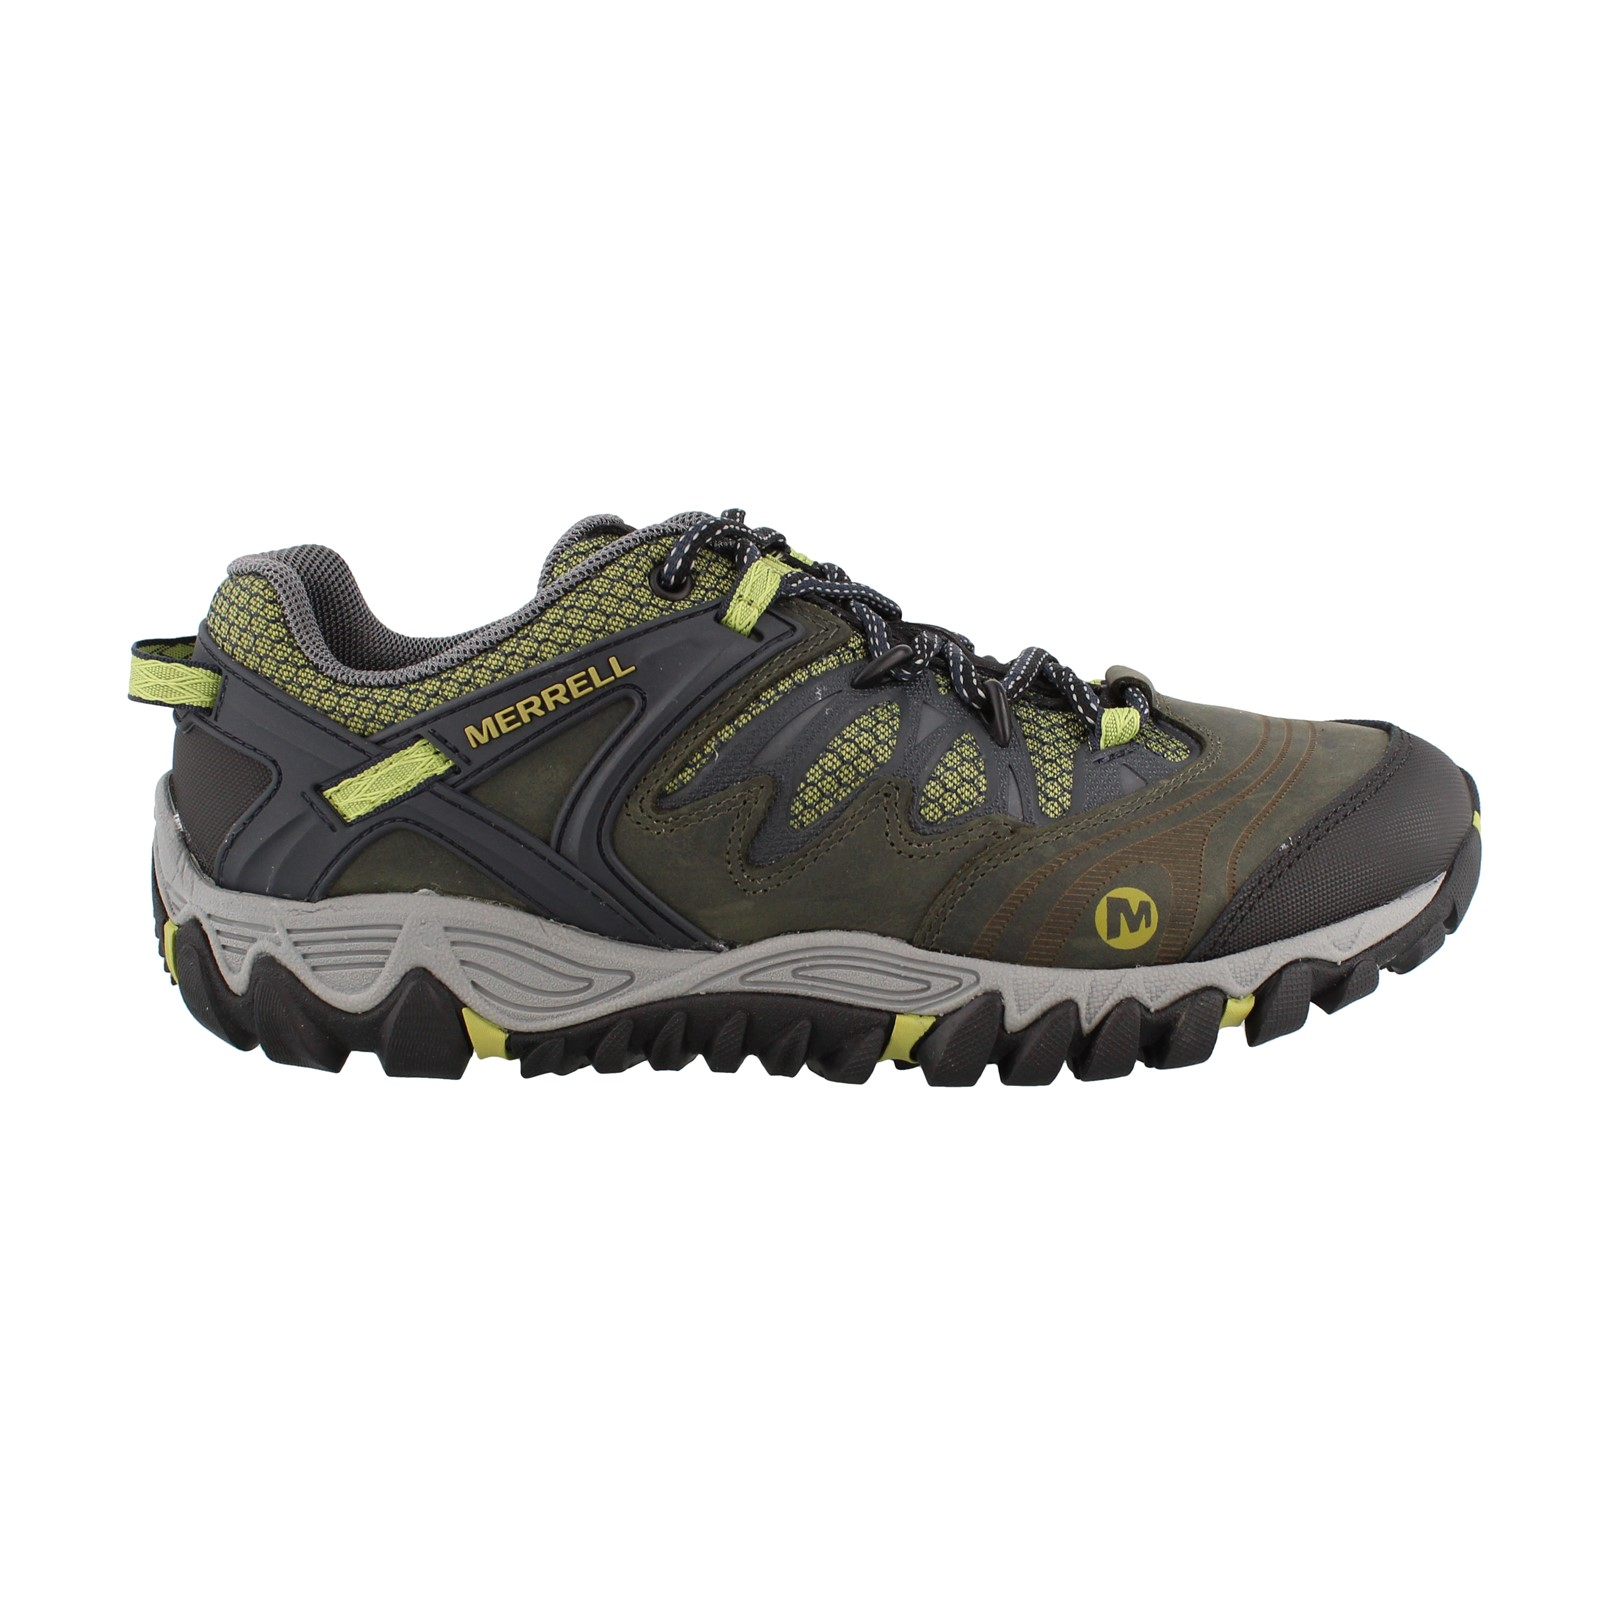 82f1fbdb14fe Next. add to favorites. Men s Merrell